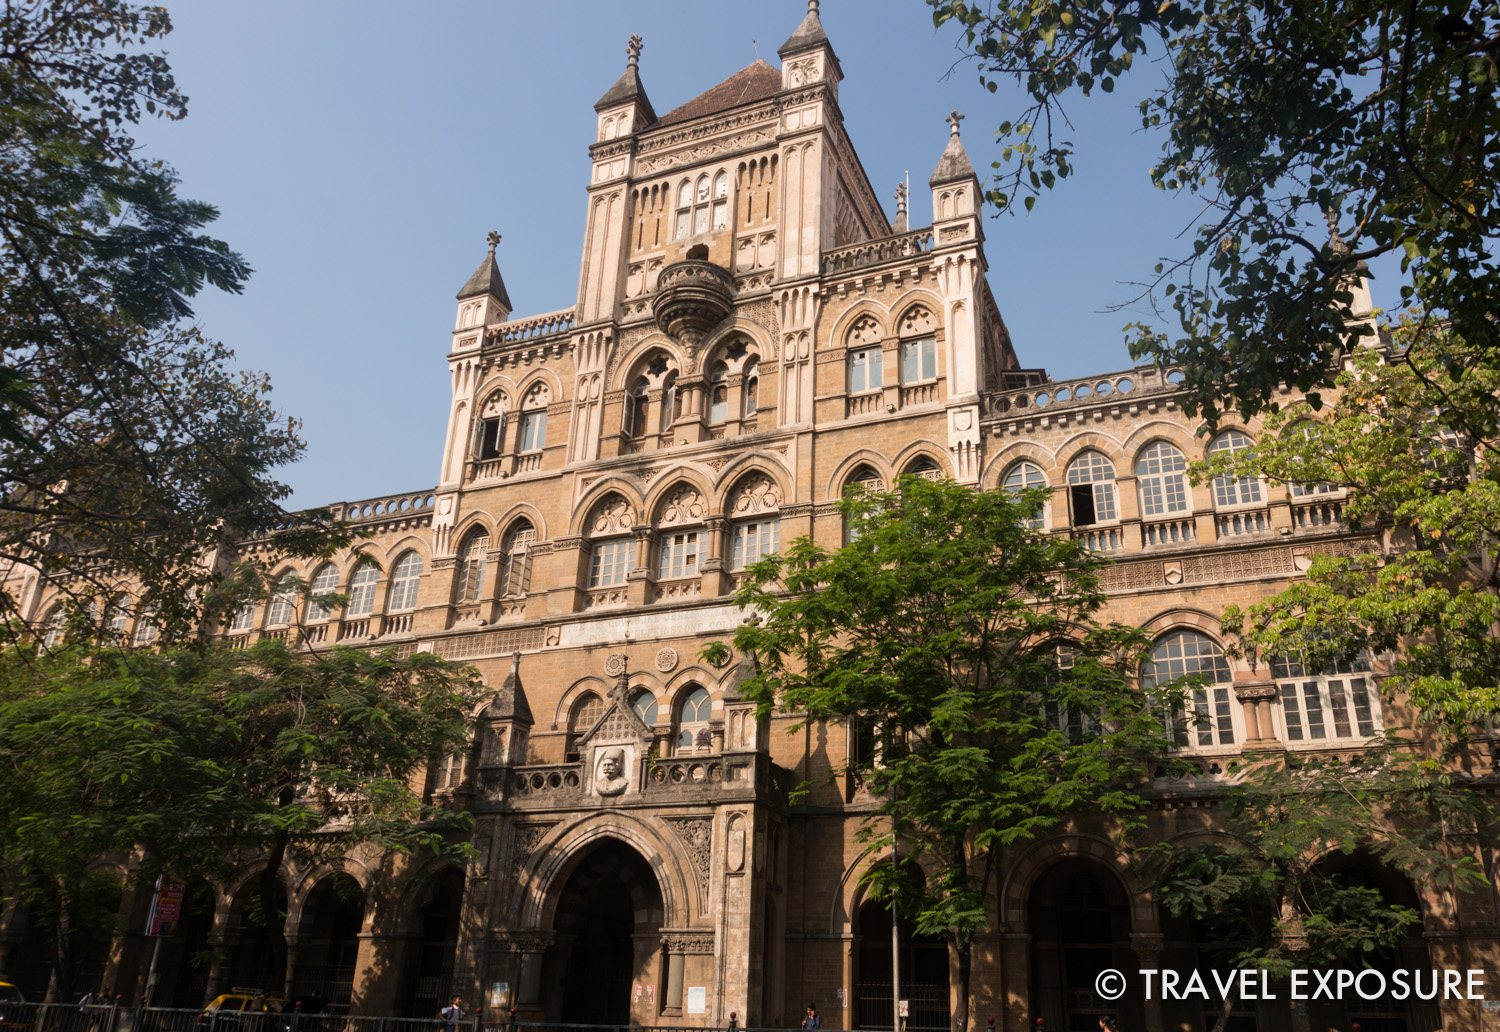 Snapped a shot of the gothic architecture of Elphinstone College in Mumbai